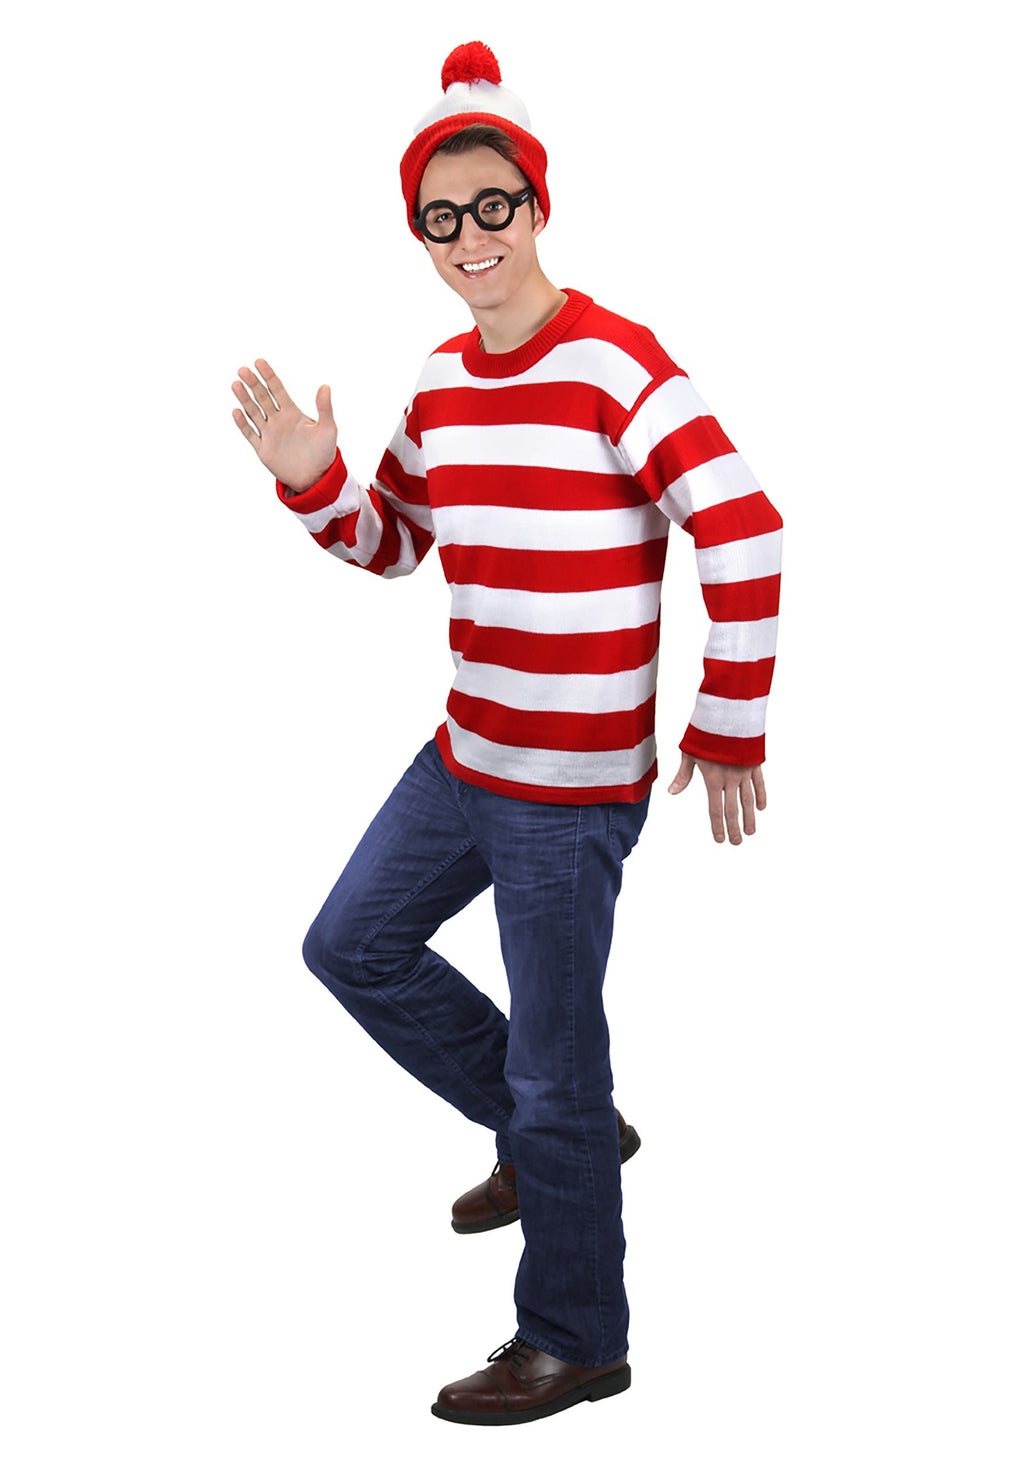 Where's Waldo Costume - Aesthetic Cosplay, LLC